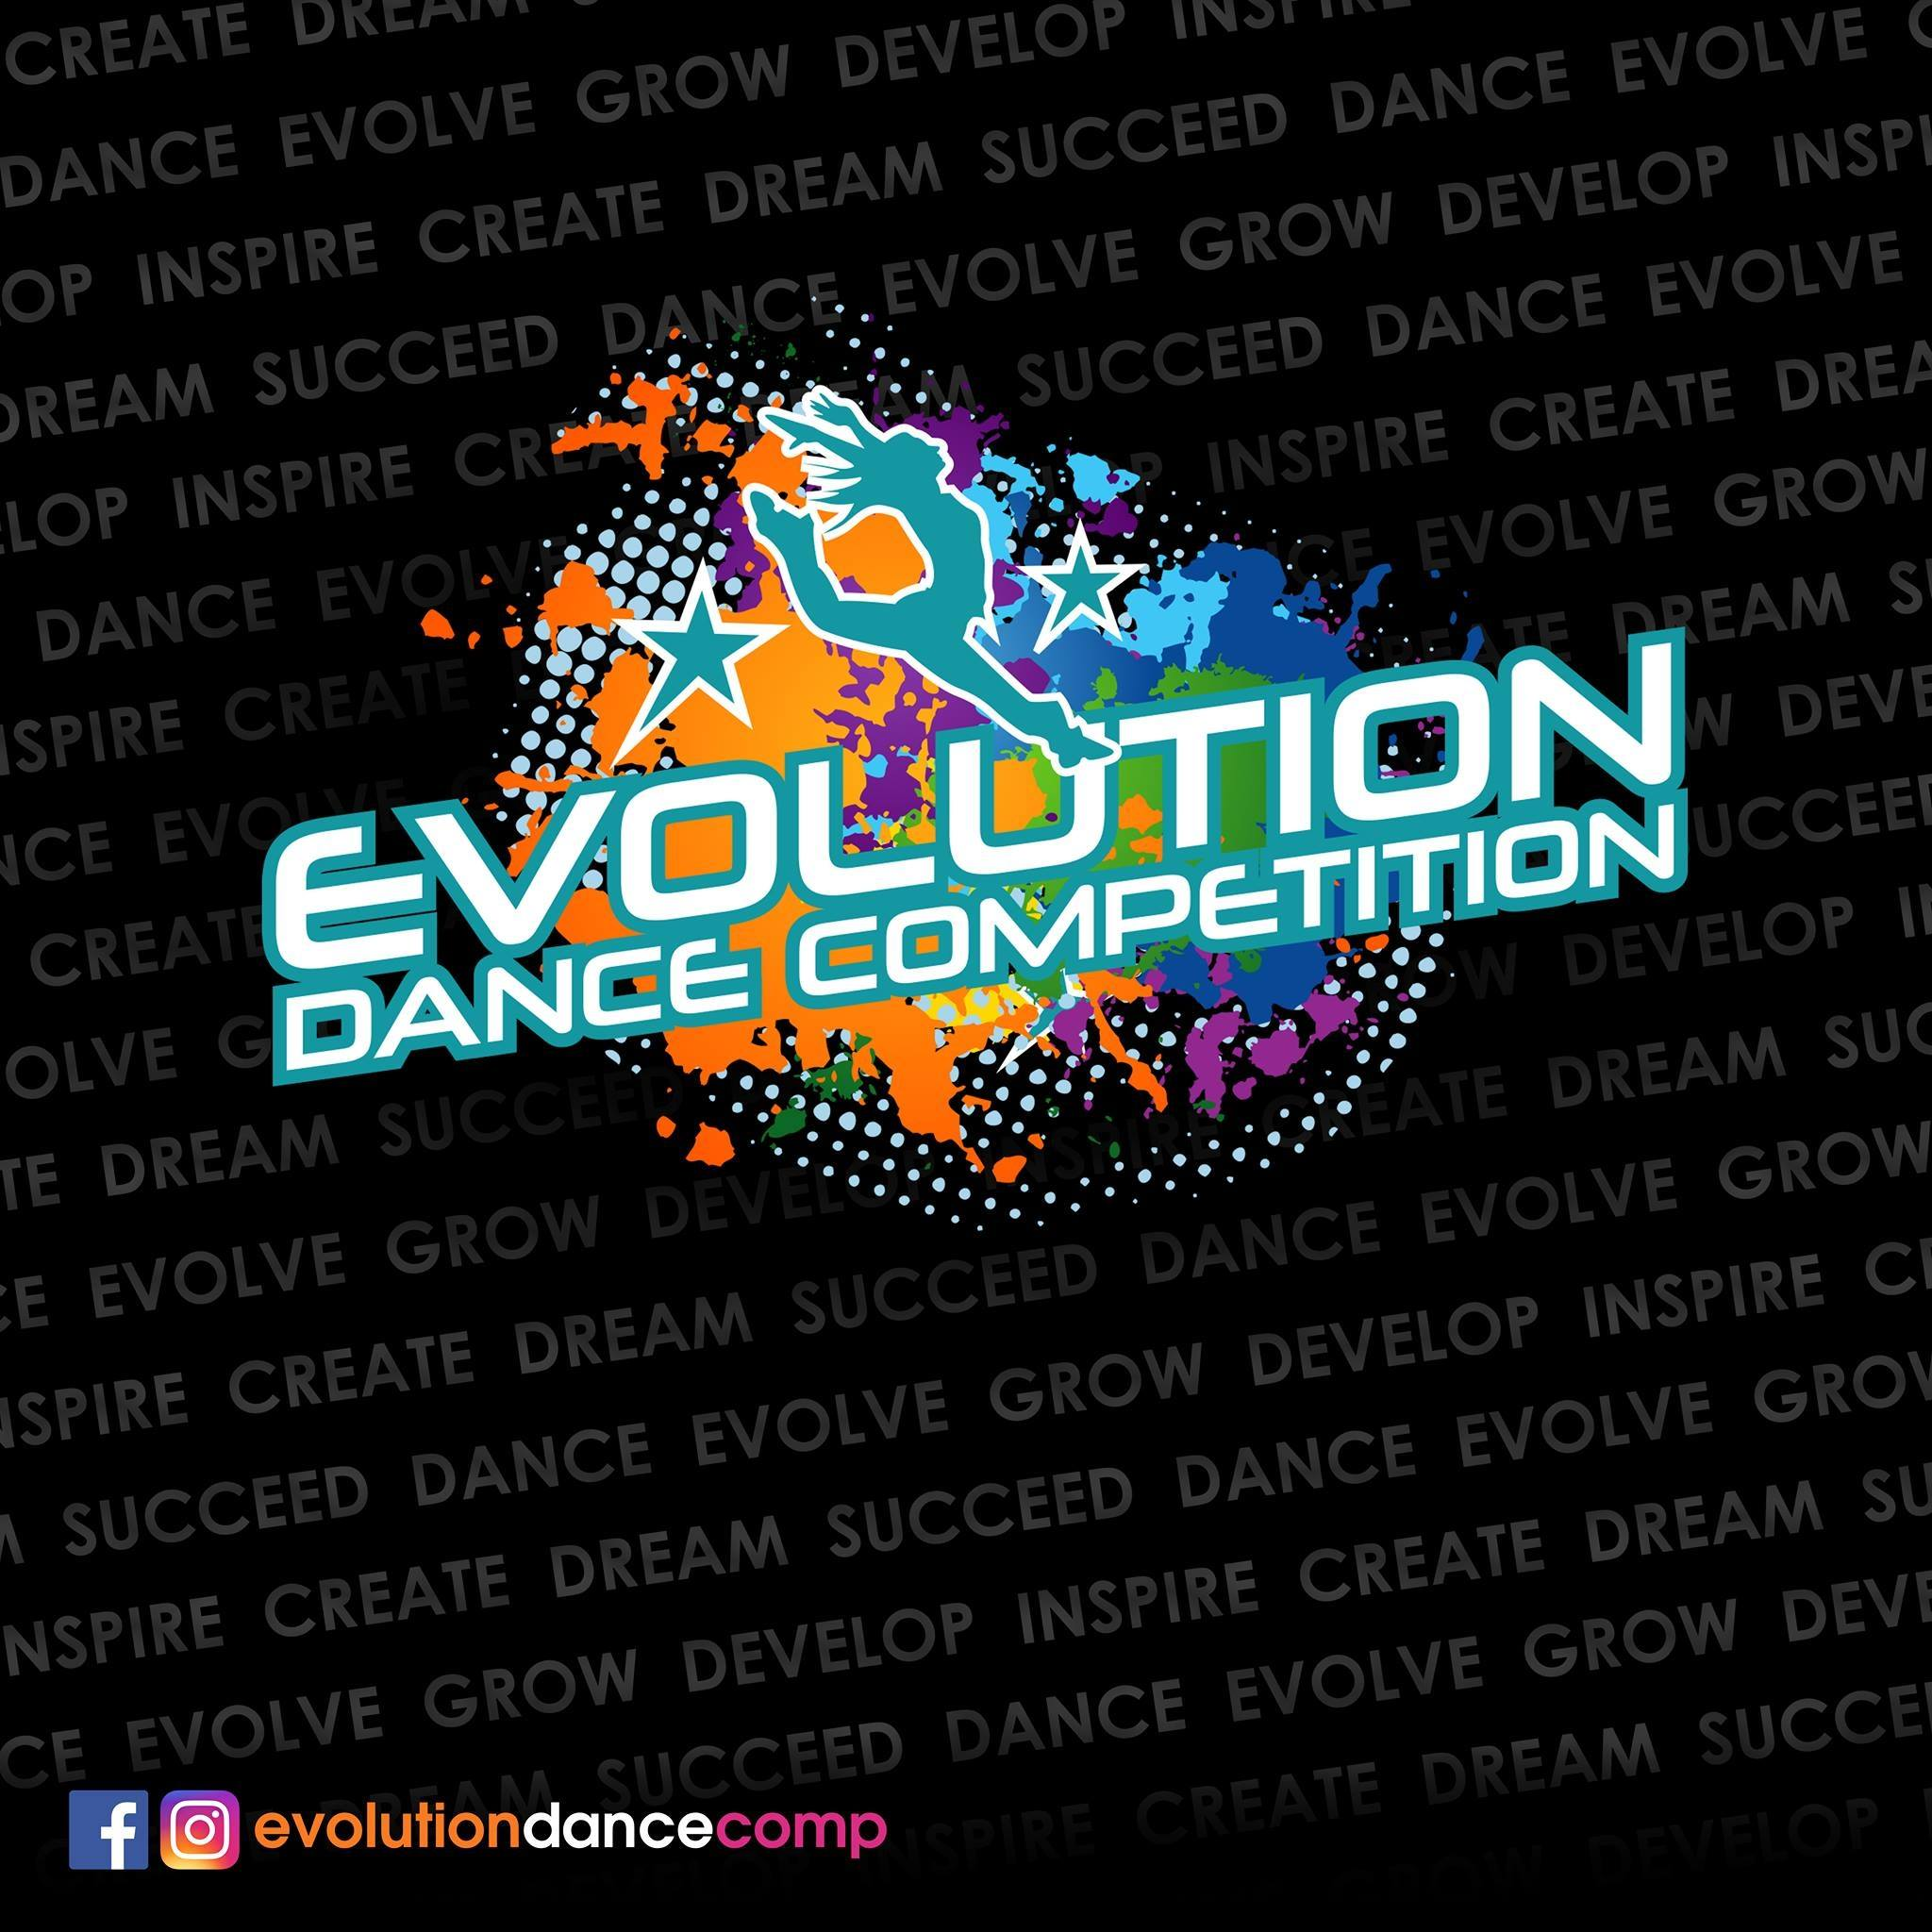 EVOLUTION DANCE COMPETITION